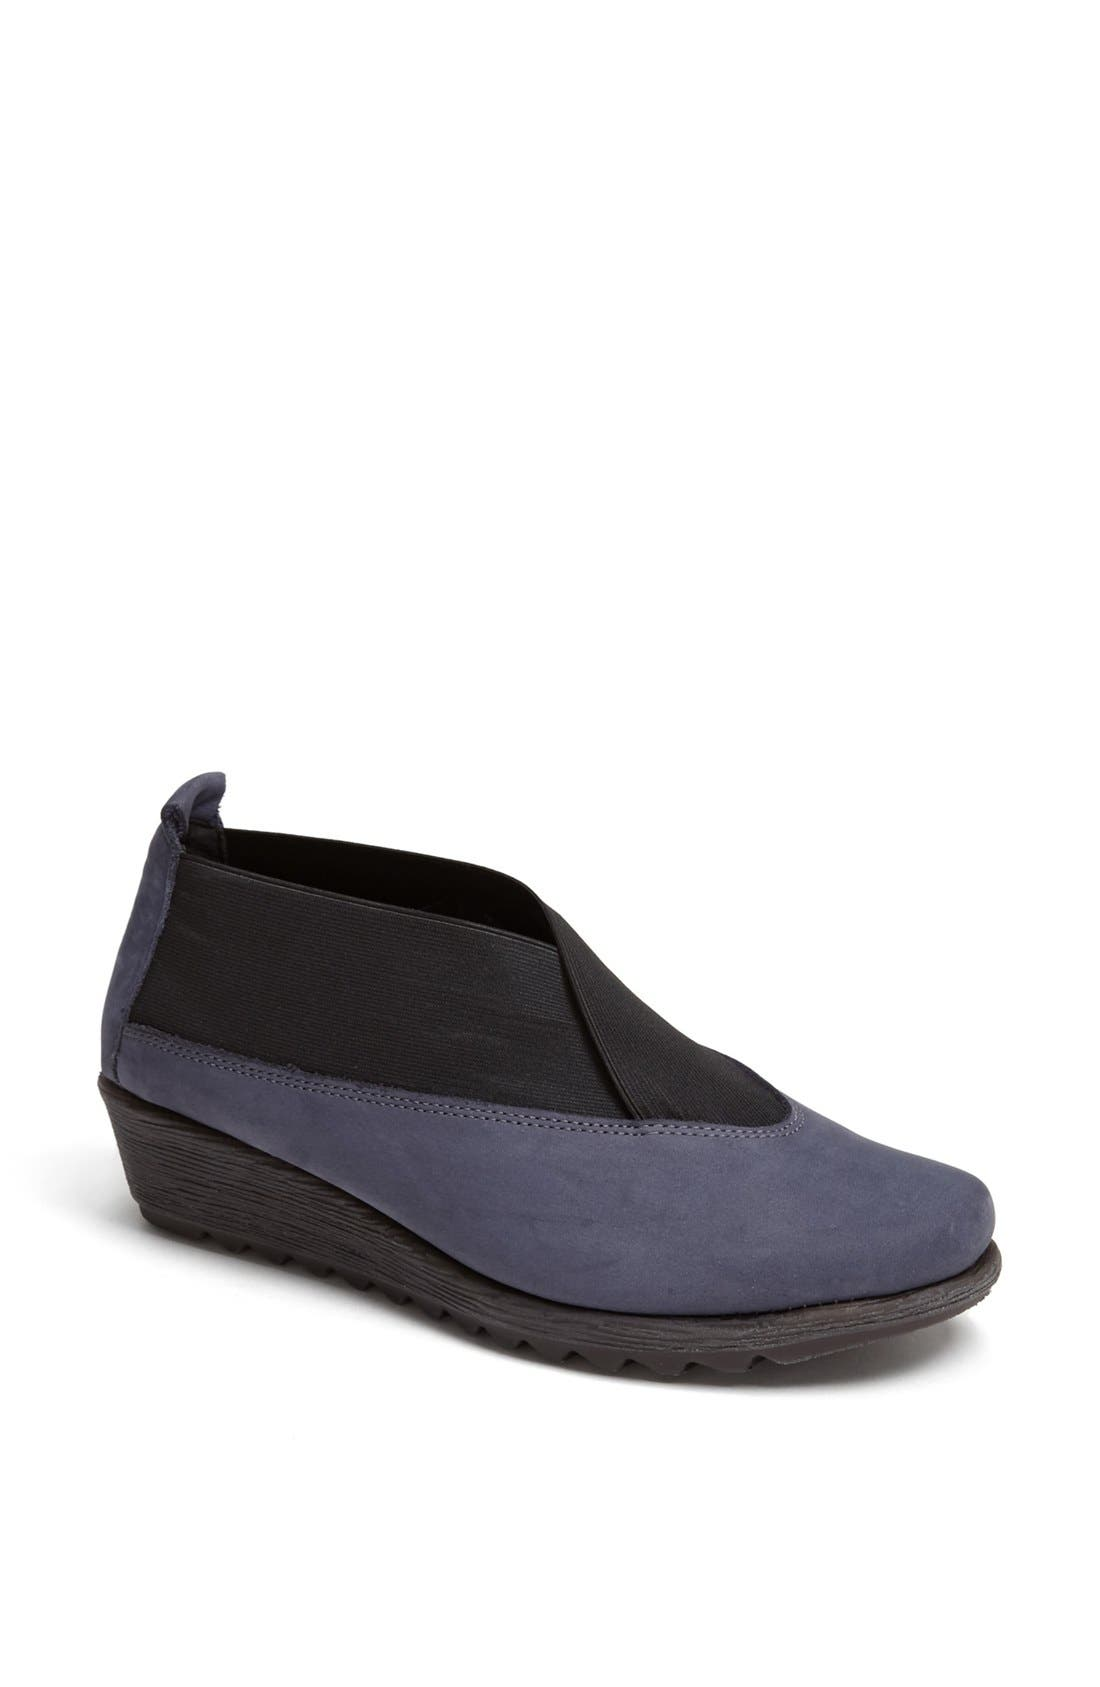 Alternate Image 1 Selected - The FLEXX 'Stretch Run' Slip-On